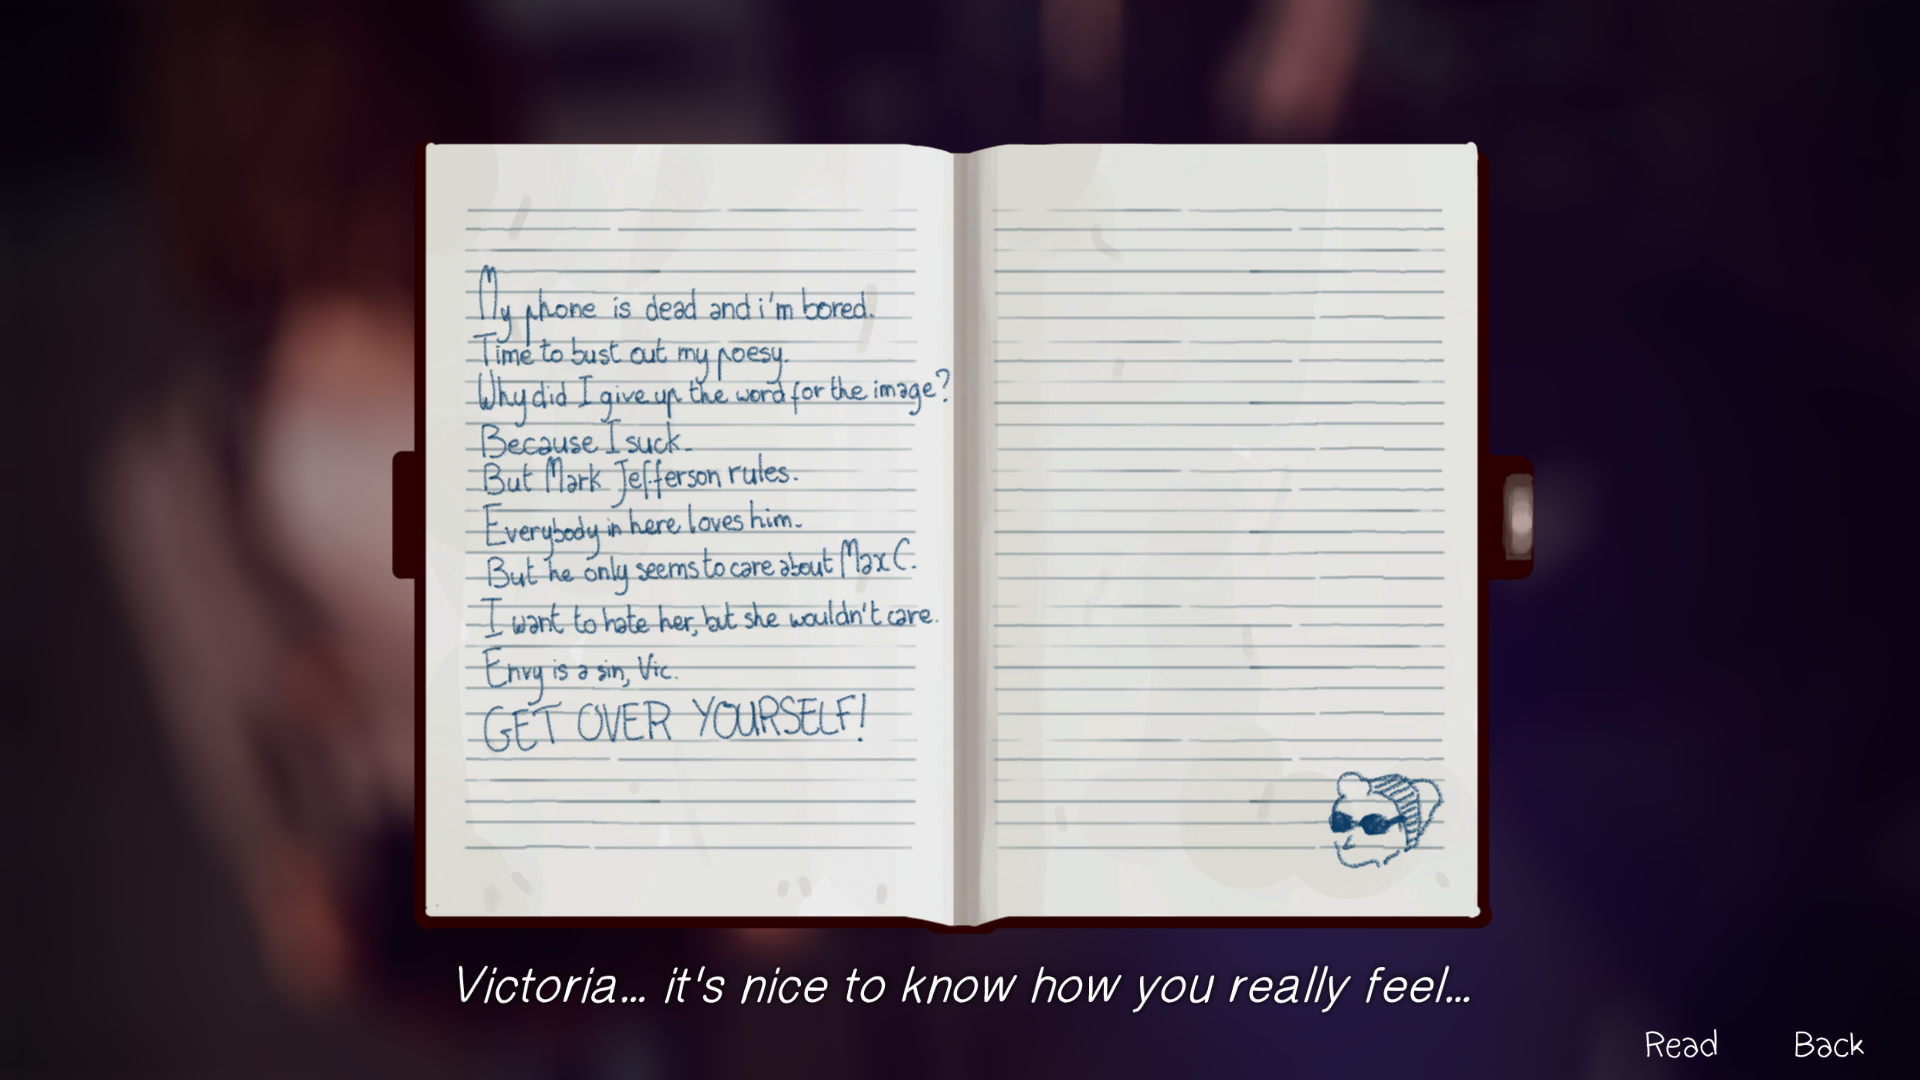 Victoria chase life is strange wiki fandom powered by wikia max can inspect victorias notebook in solutioingenieria Gallery